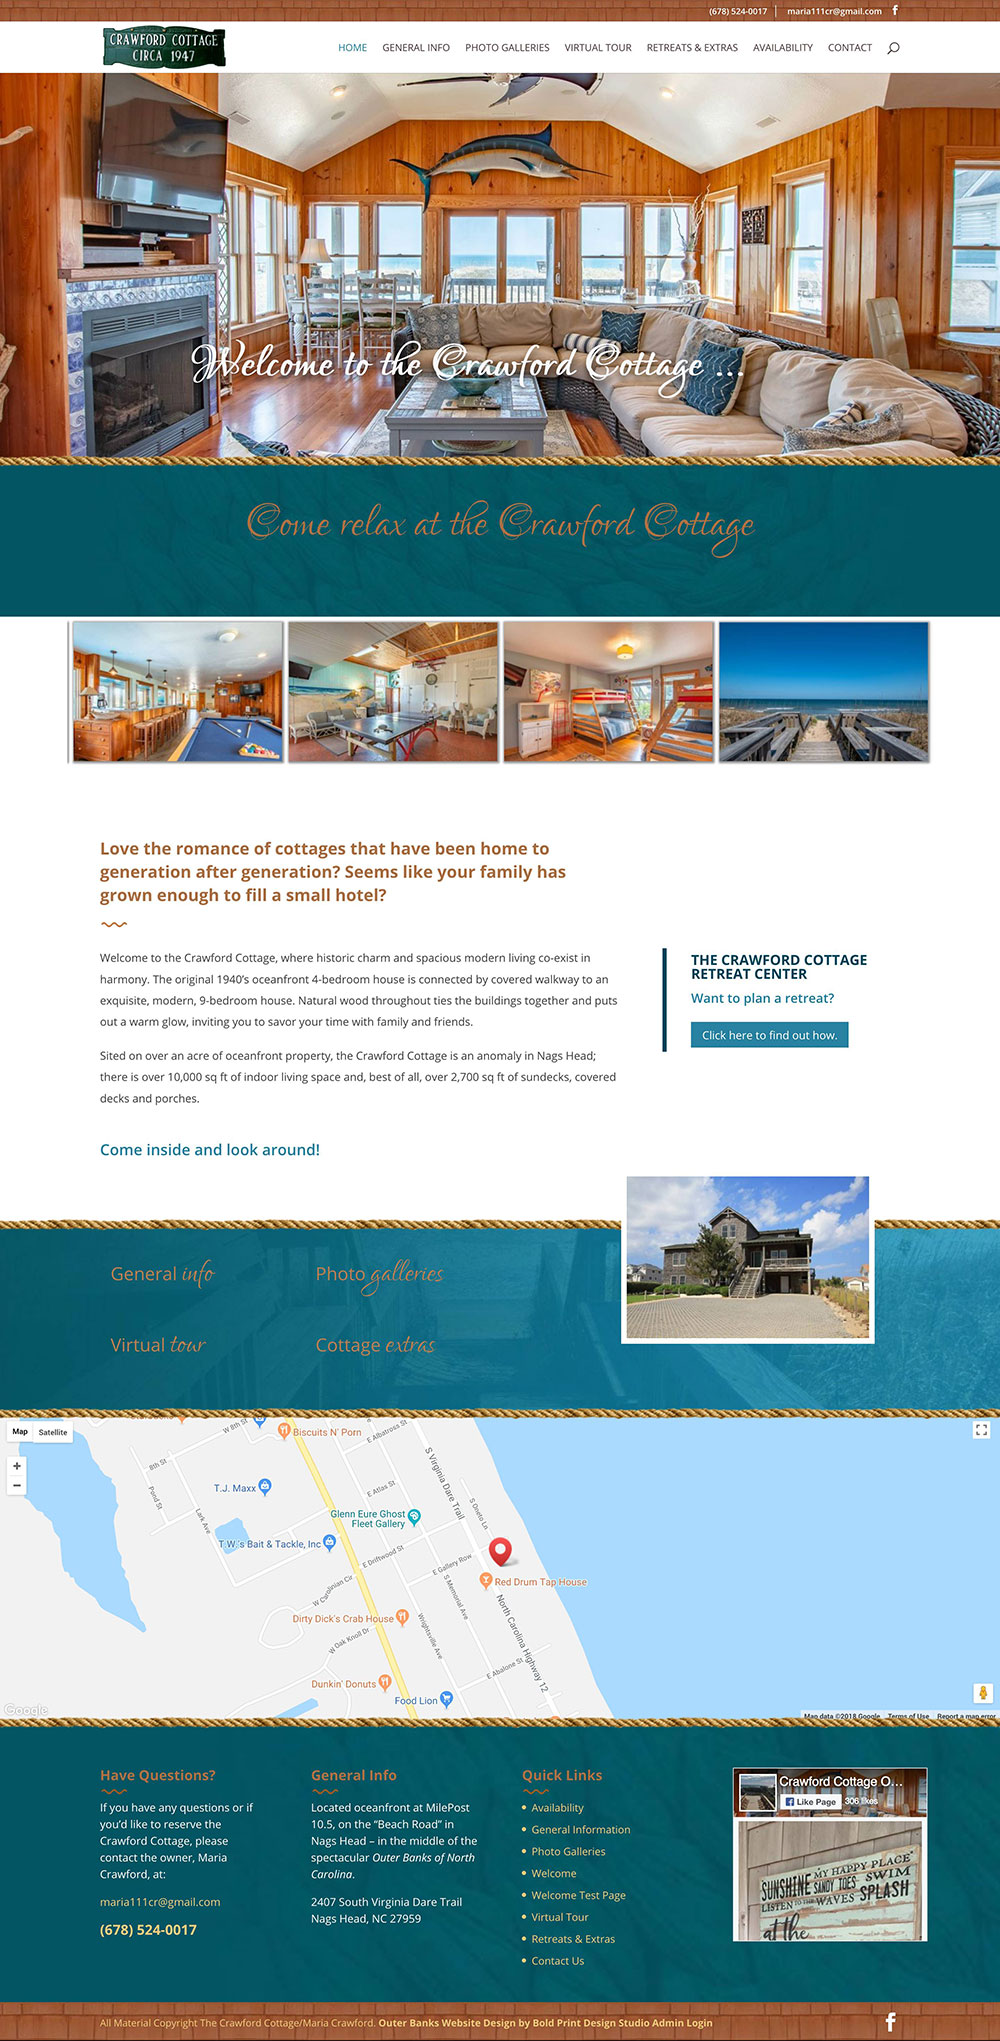 The Crawford Cottage Website